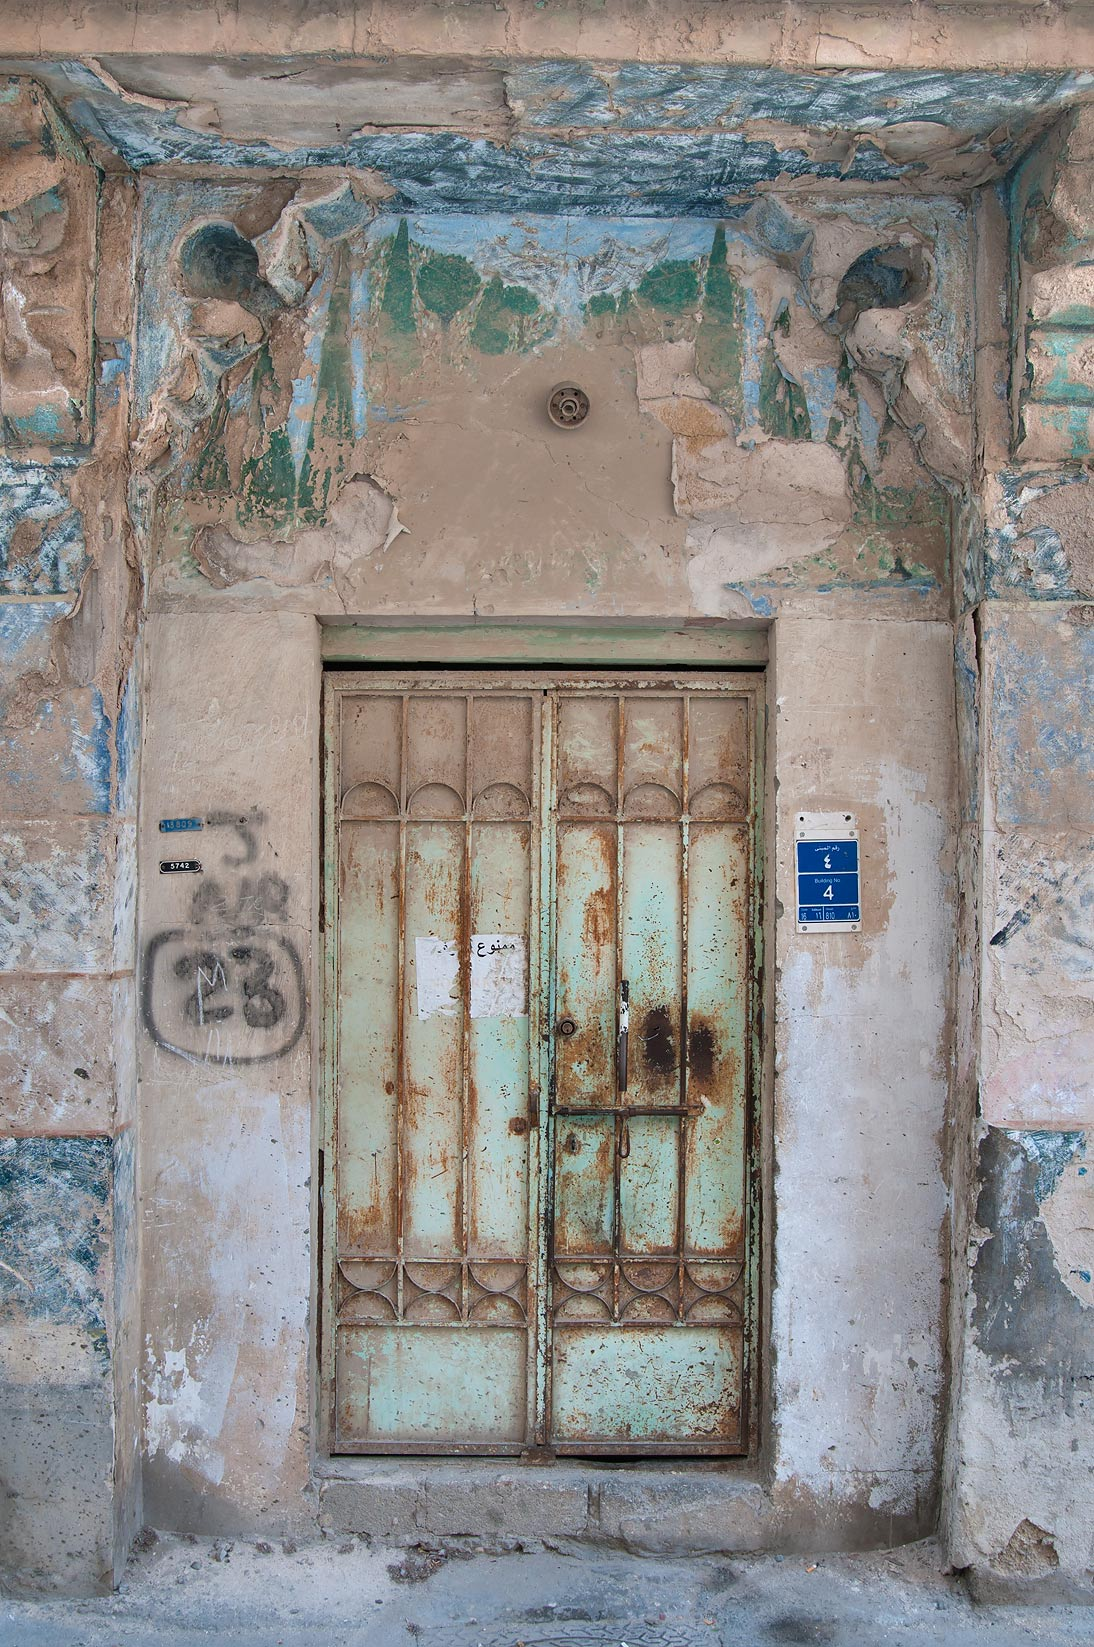 Decorated door on Ibn Abdul Muttalib St. in Old Ghanam area. Doha, Qatar